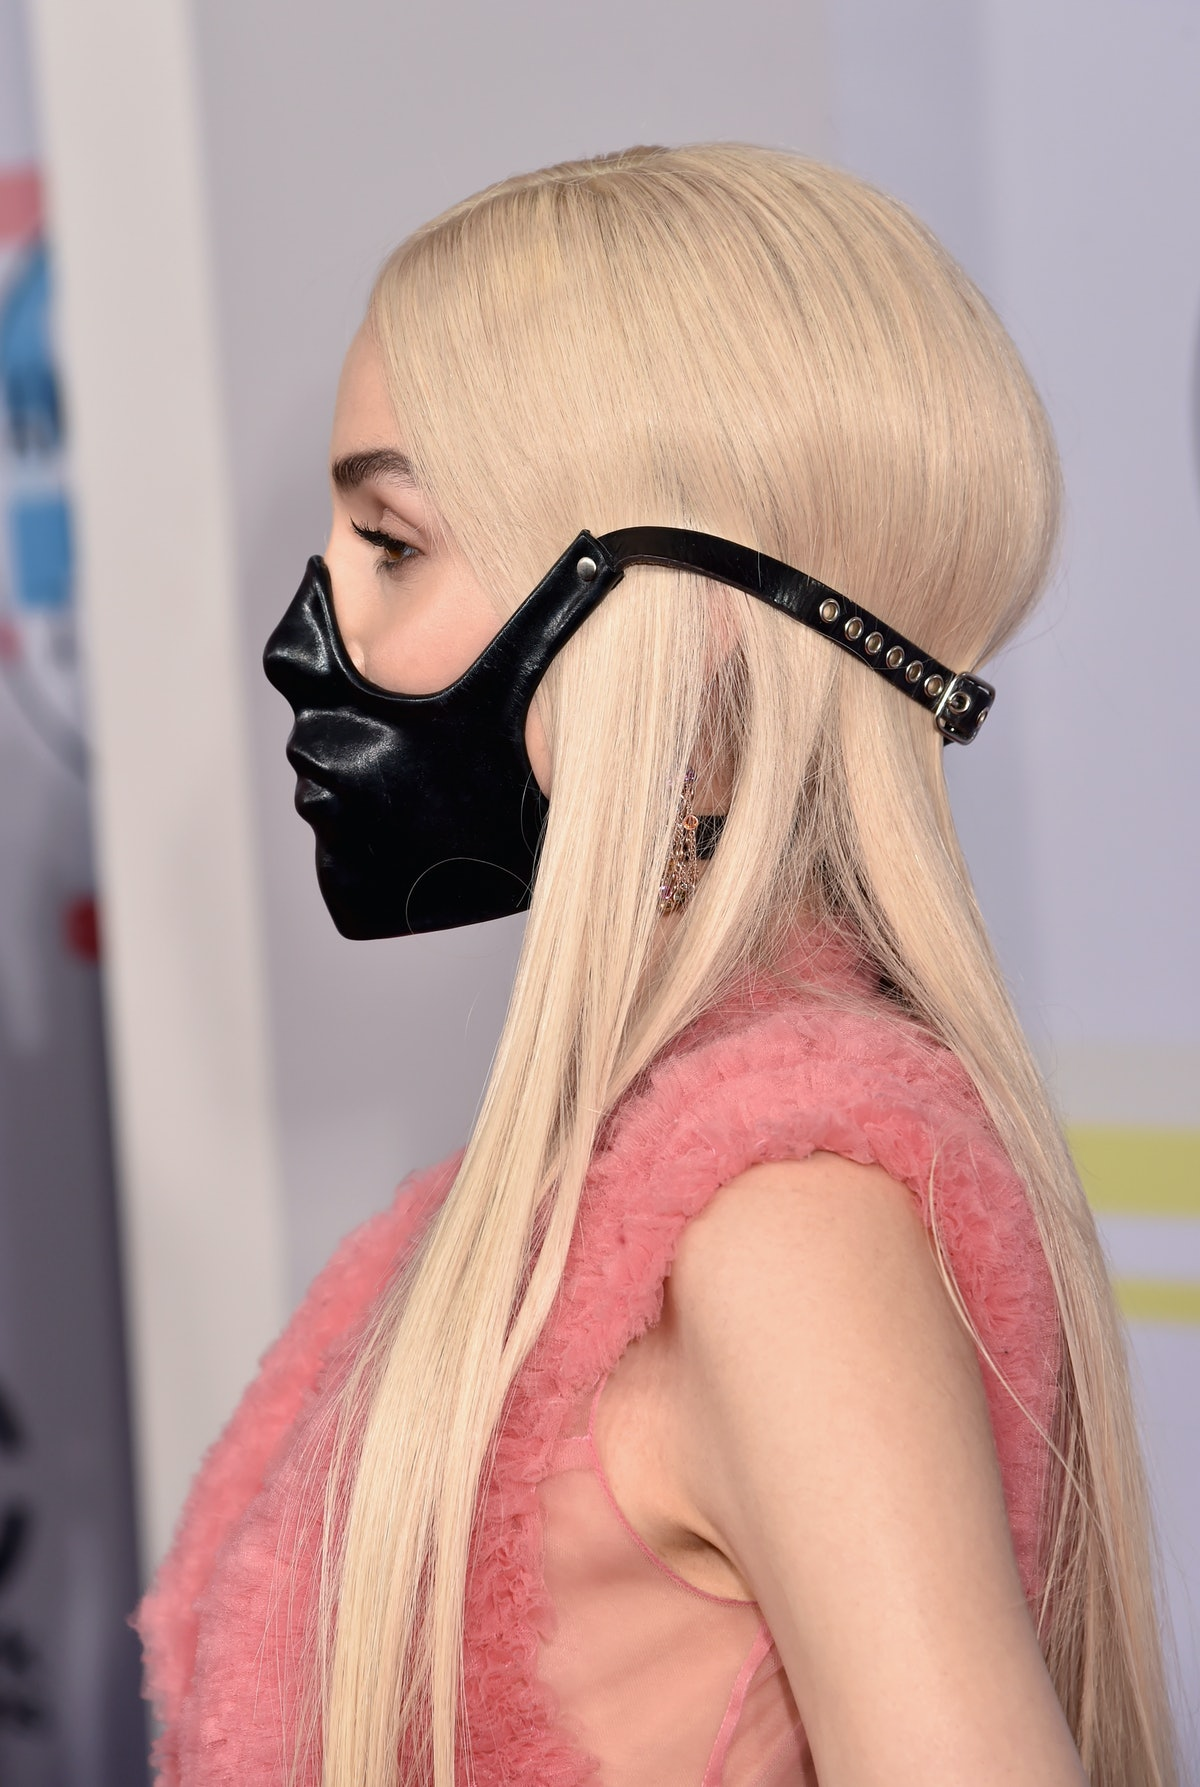 POPPY Wears A Black Mask At The AMAs 2